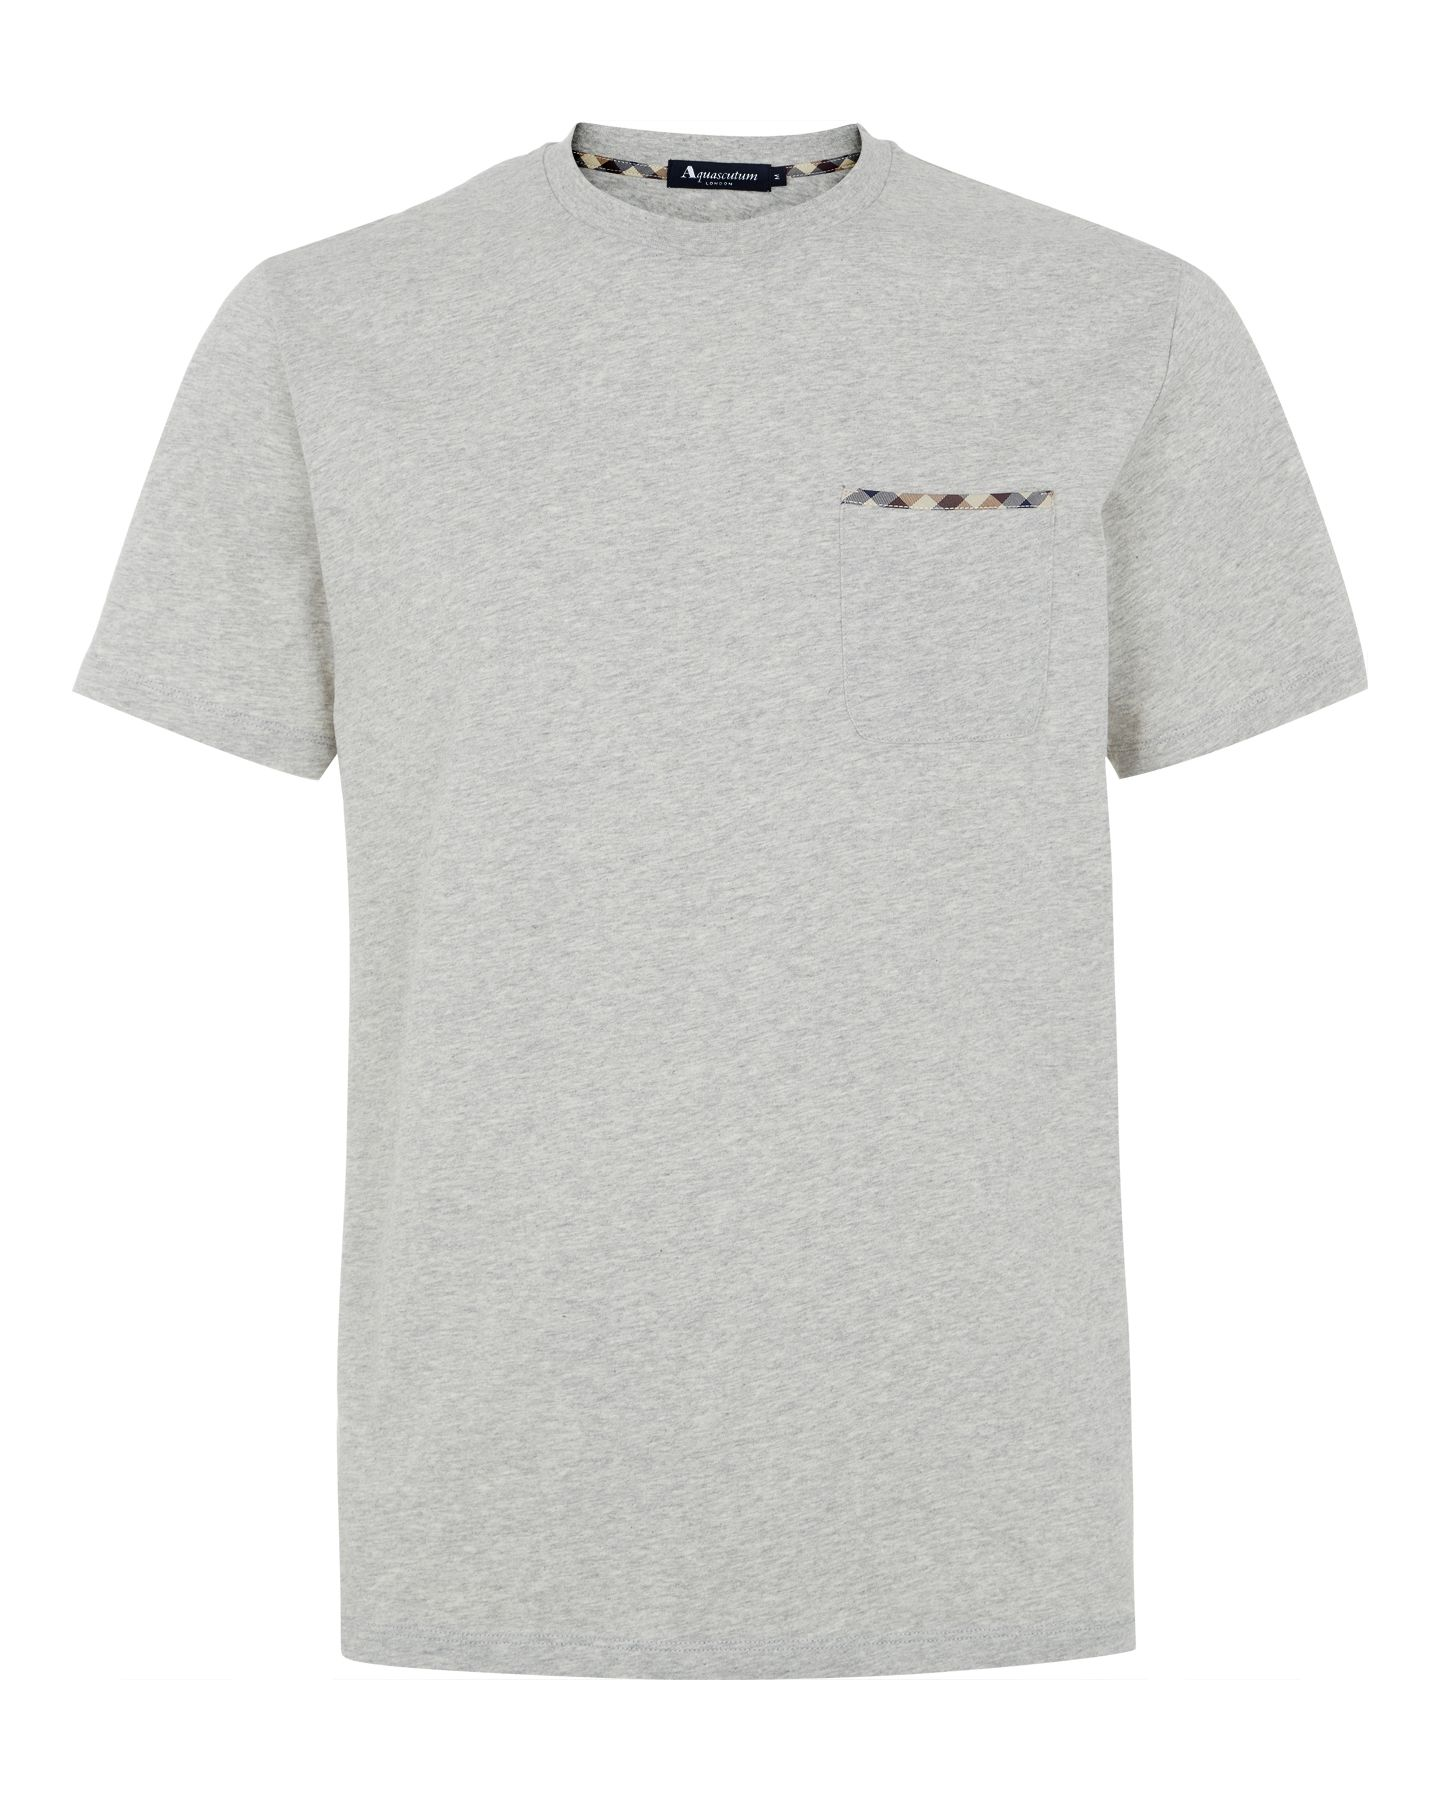 Club check trim t-shirt